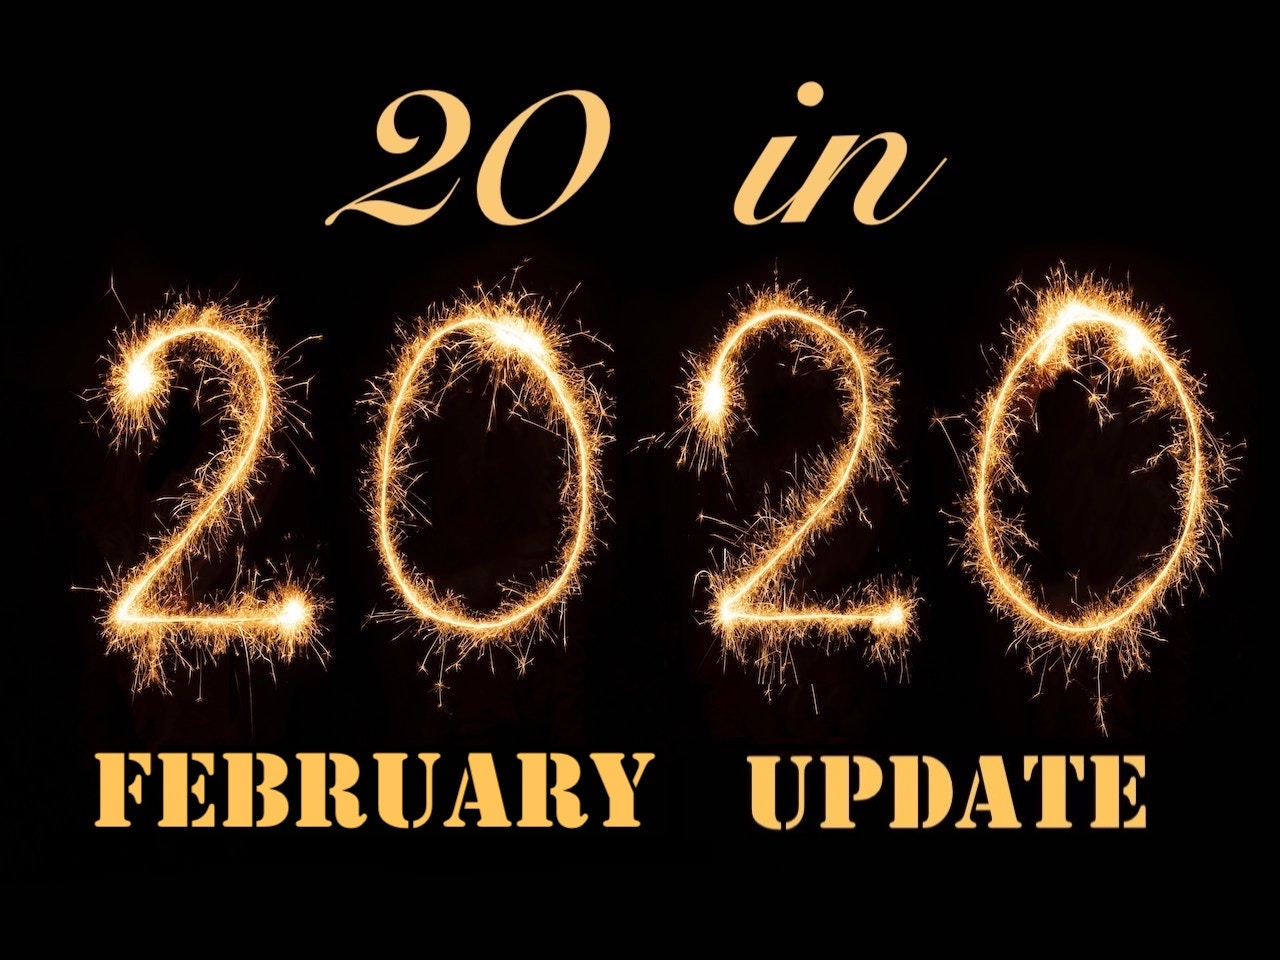 February Update on 20 in 2020